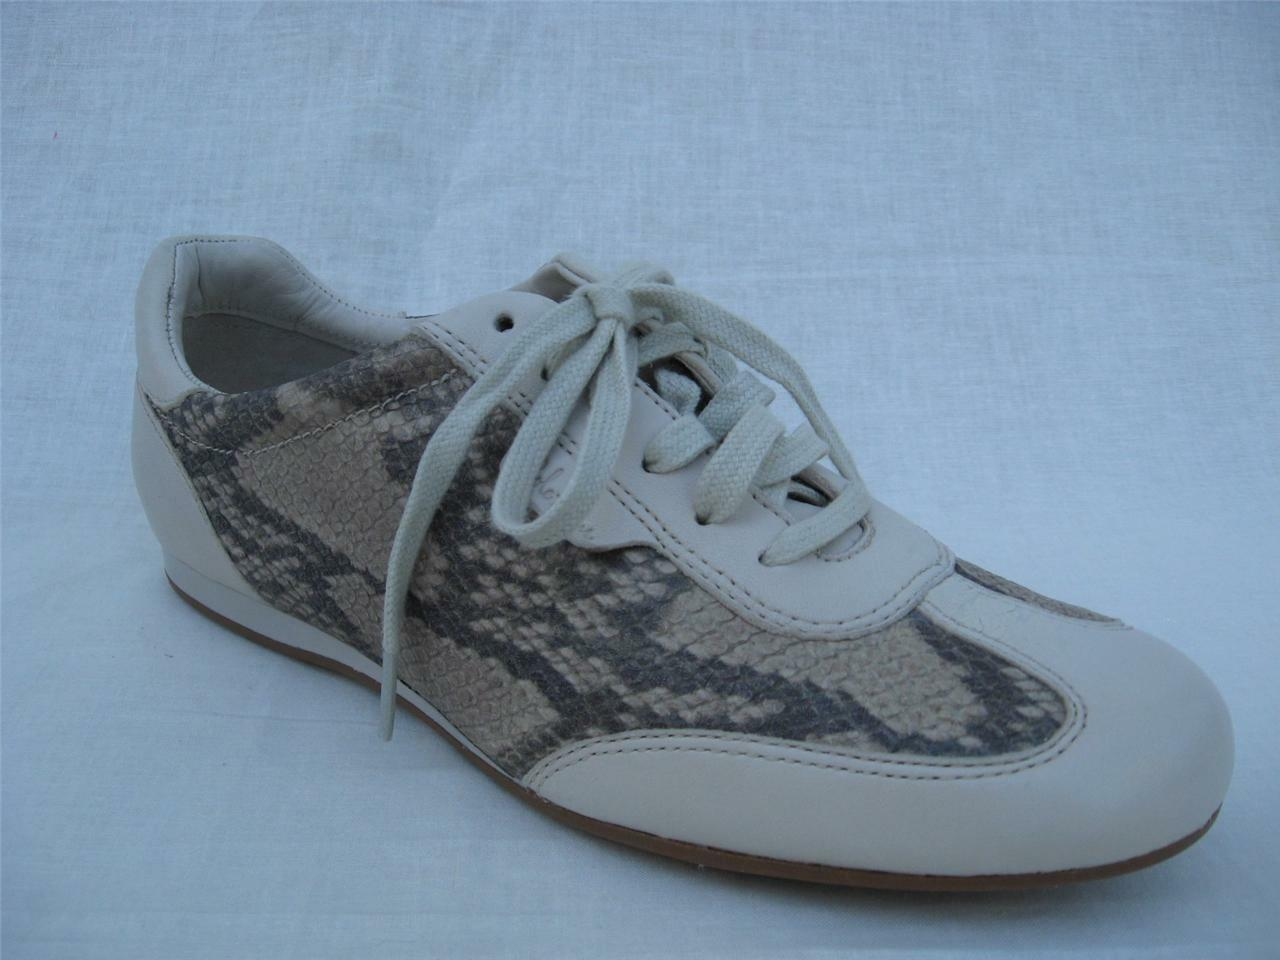 6.5M COLE HAAN WOMENS FLAT SNEAKER LEATHER SHOES MSRP $148.